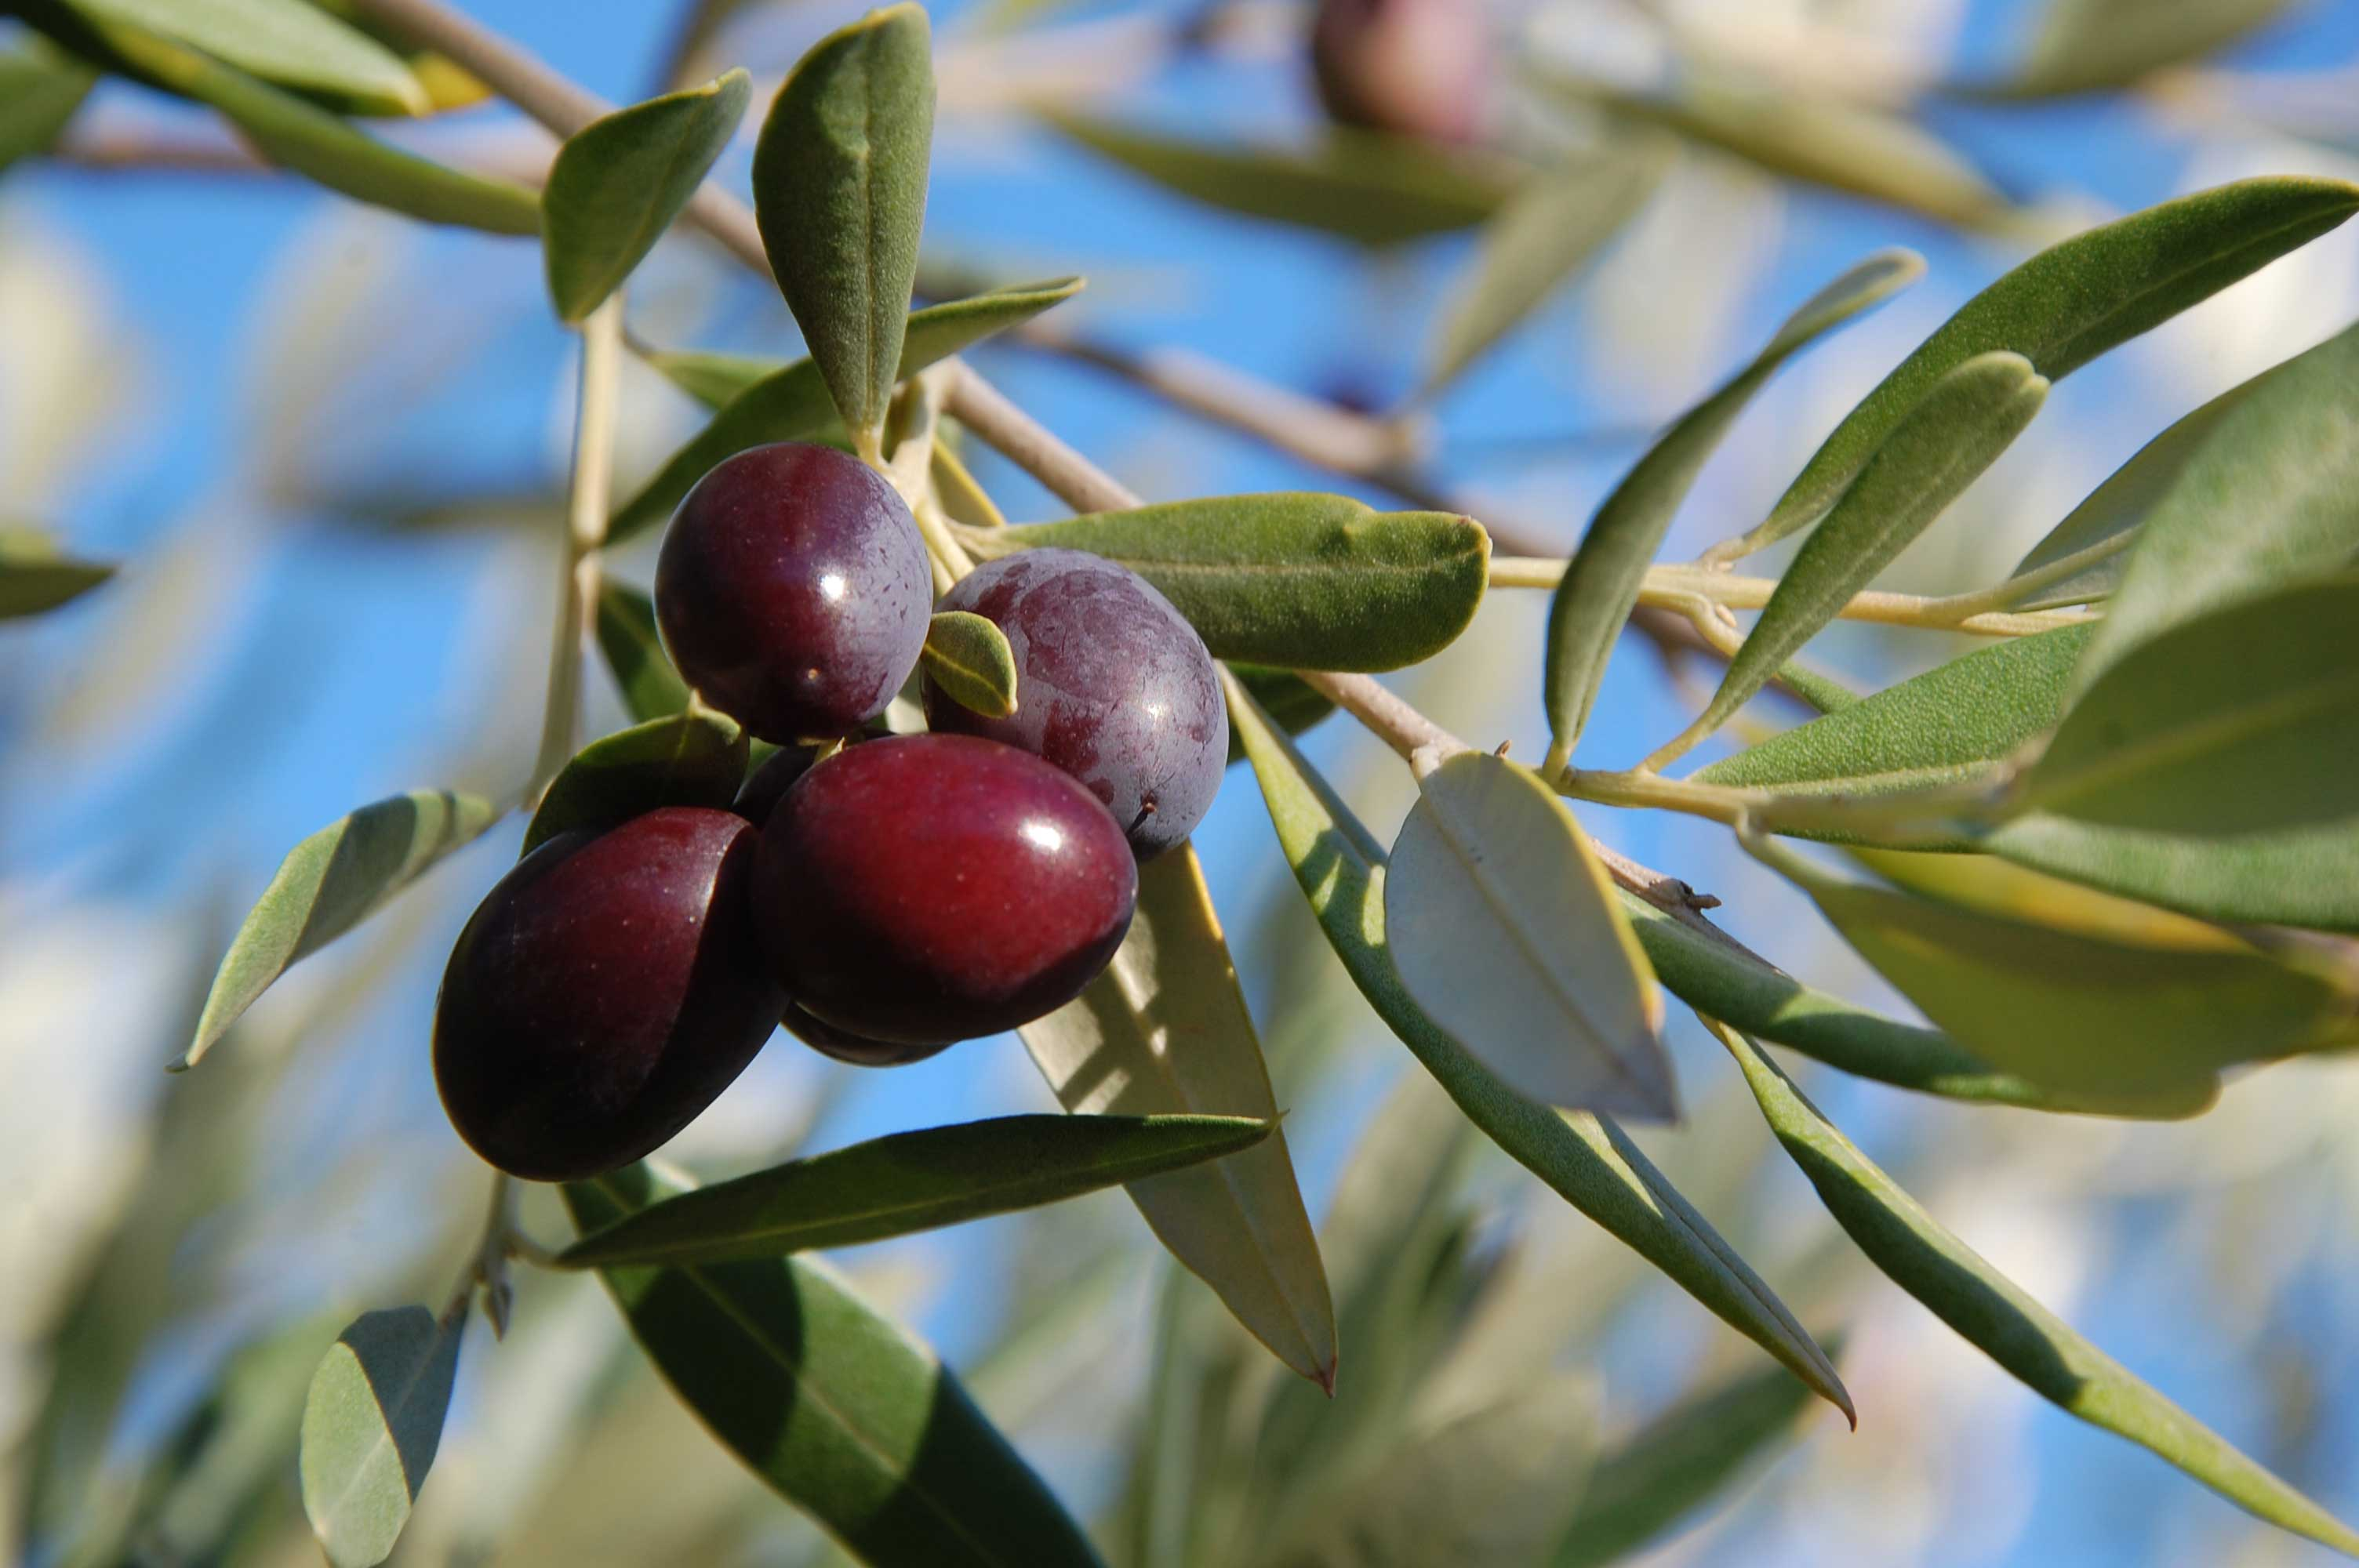 Resistance of Olive Tree to Spilocaea oleagina